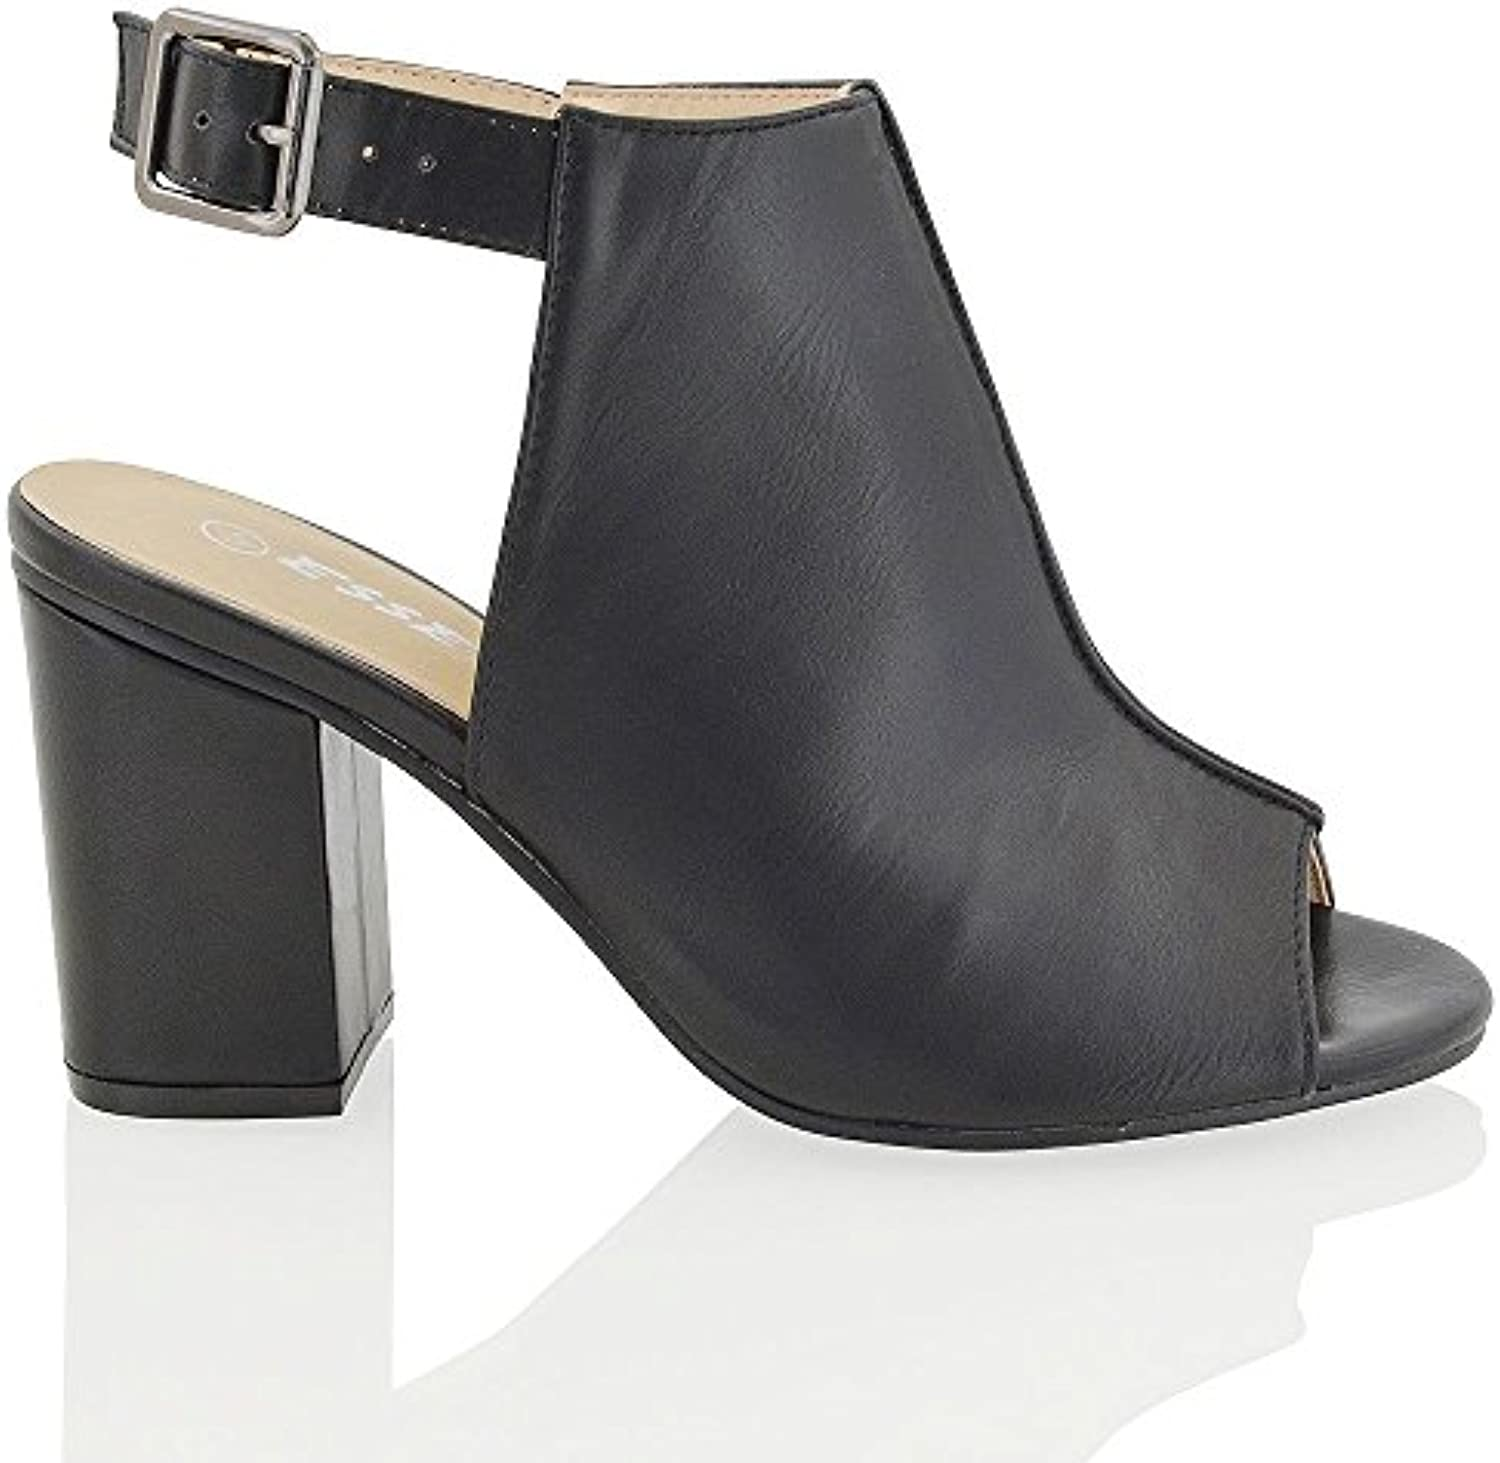 abaeff1e2f6 ESSEX GLAM Boots New Womens Mid Open Block Heel Peep Toe Shoe Open Back  Ladies Back Strap Ankle Boots Shoe B01G79URB4 Parent 0043fb0 -  www.bmlcreations.com